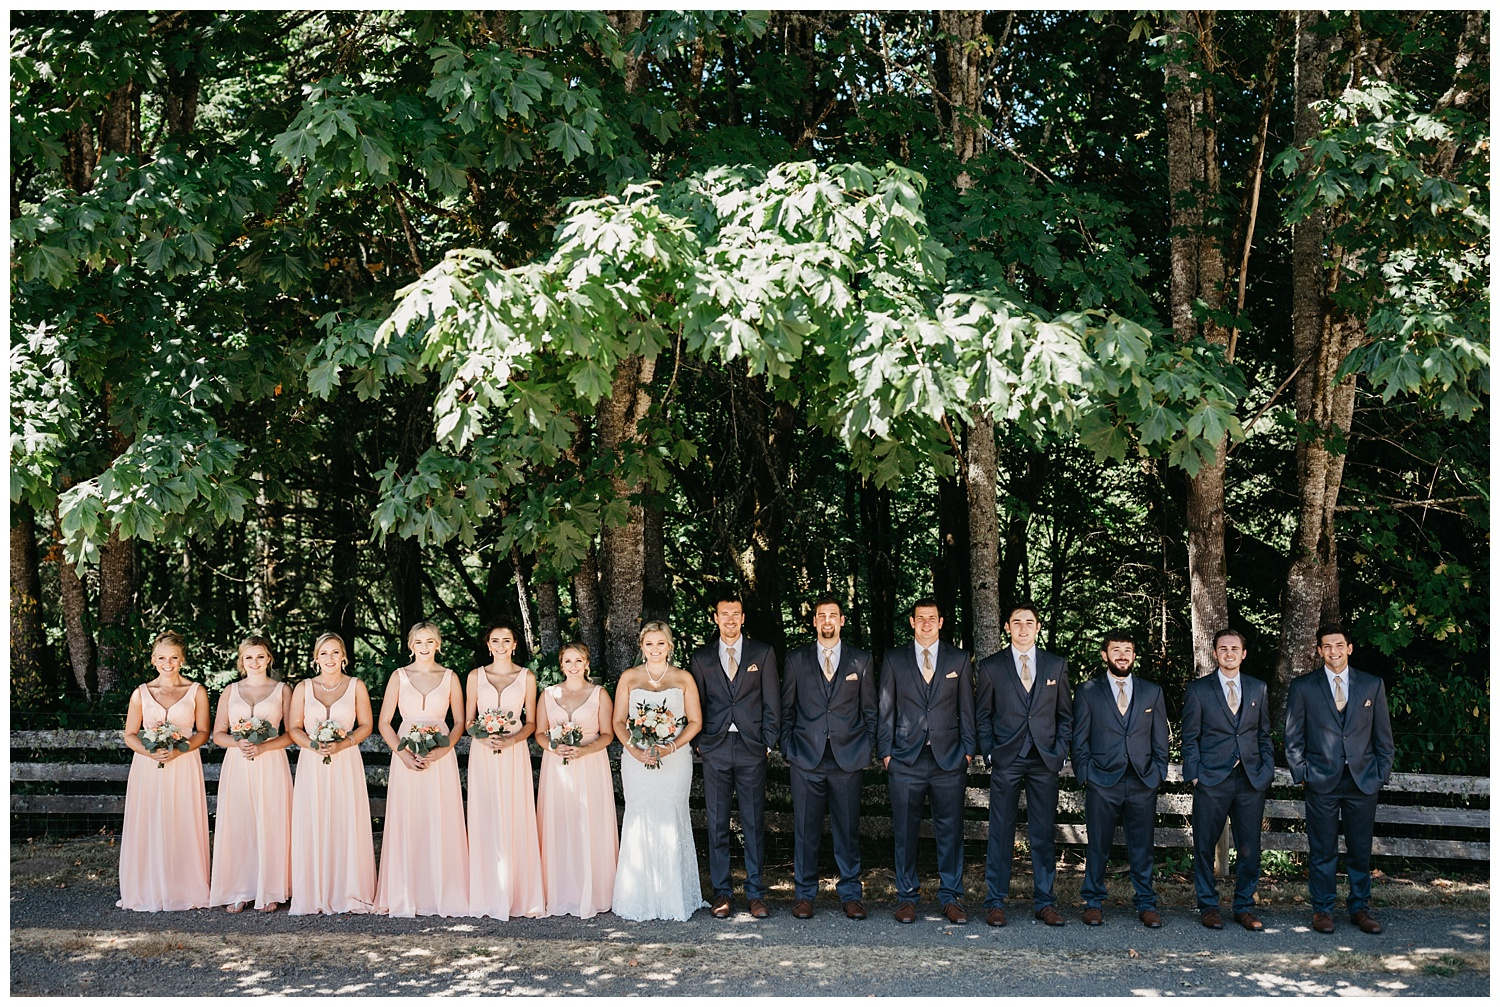 SeattleWeddingPhotographer_0153.jpg